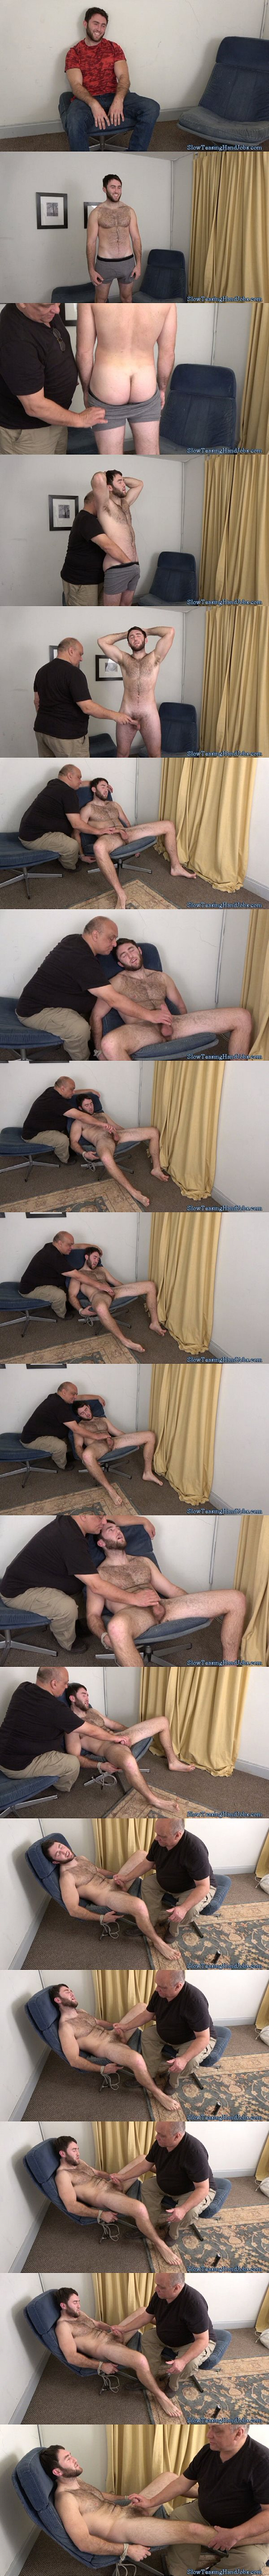 Hairy masculine straight construction worker Brad slowly jerked off at Slowteasinghandjobs 02